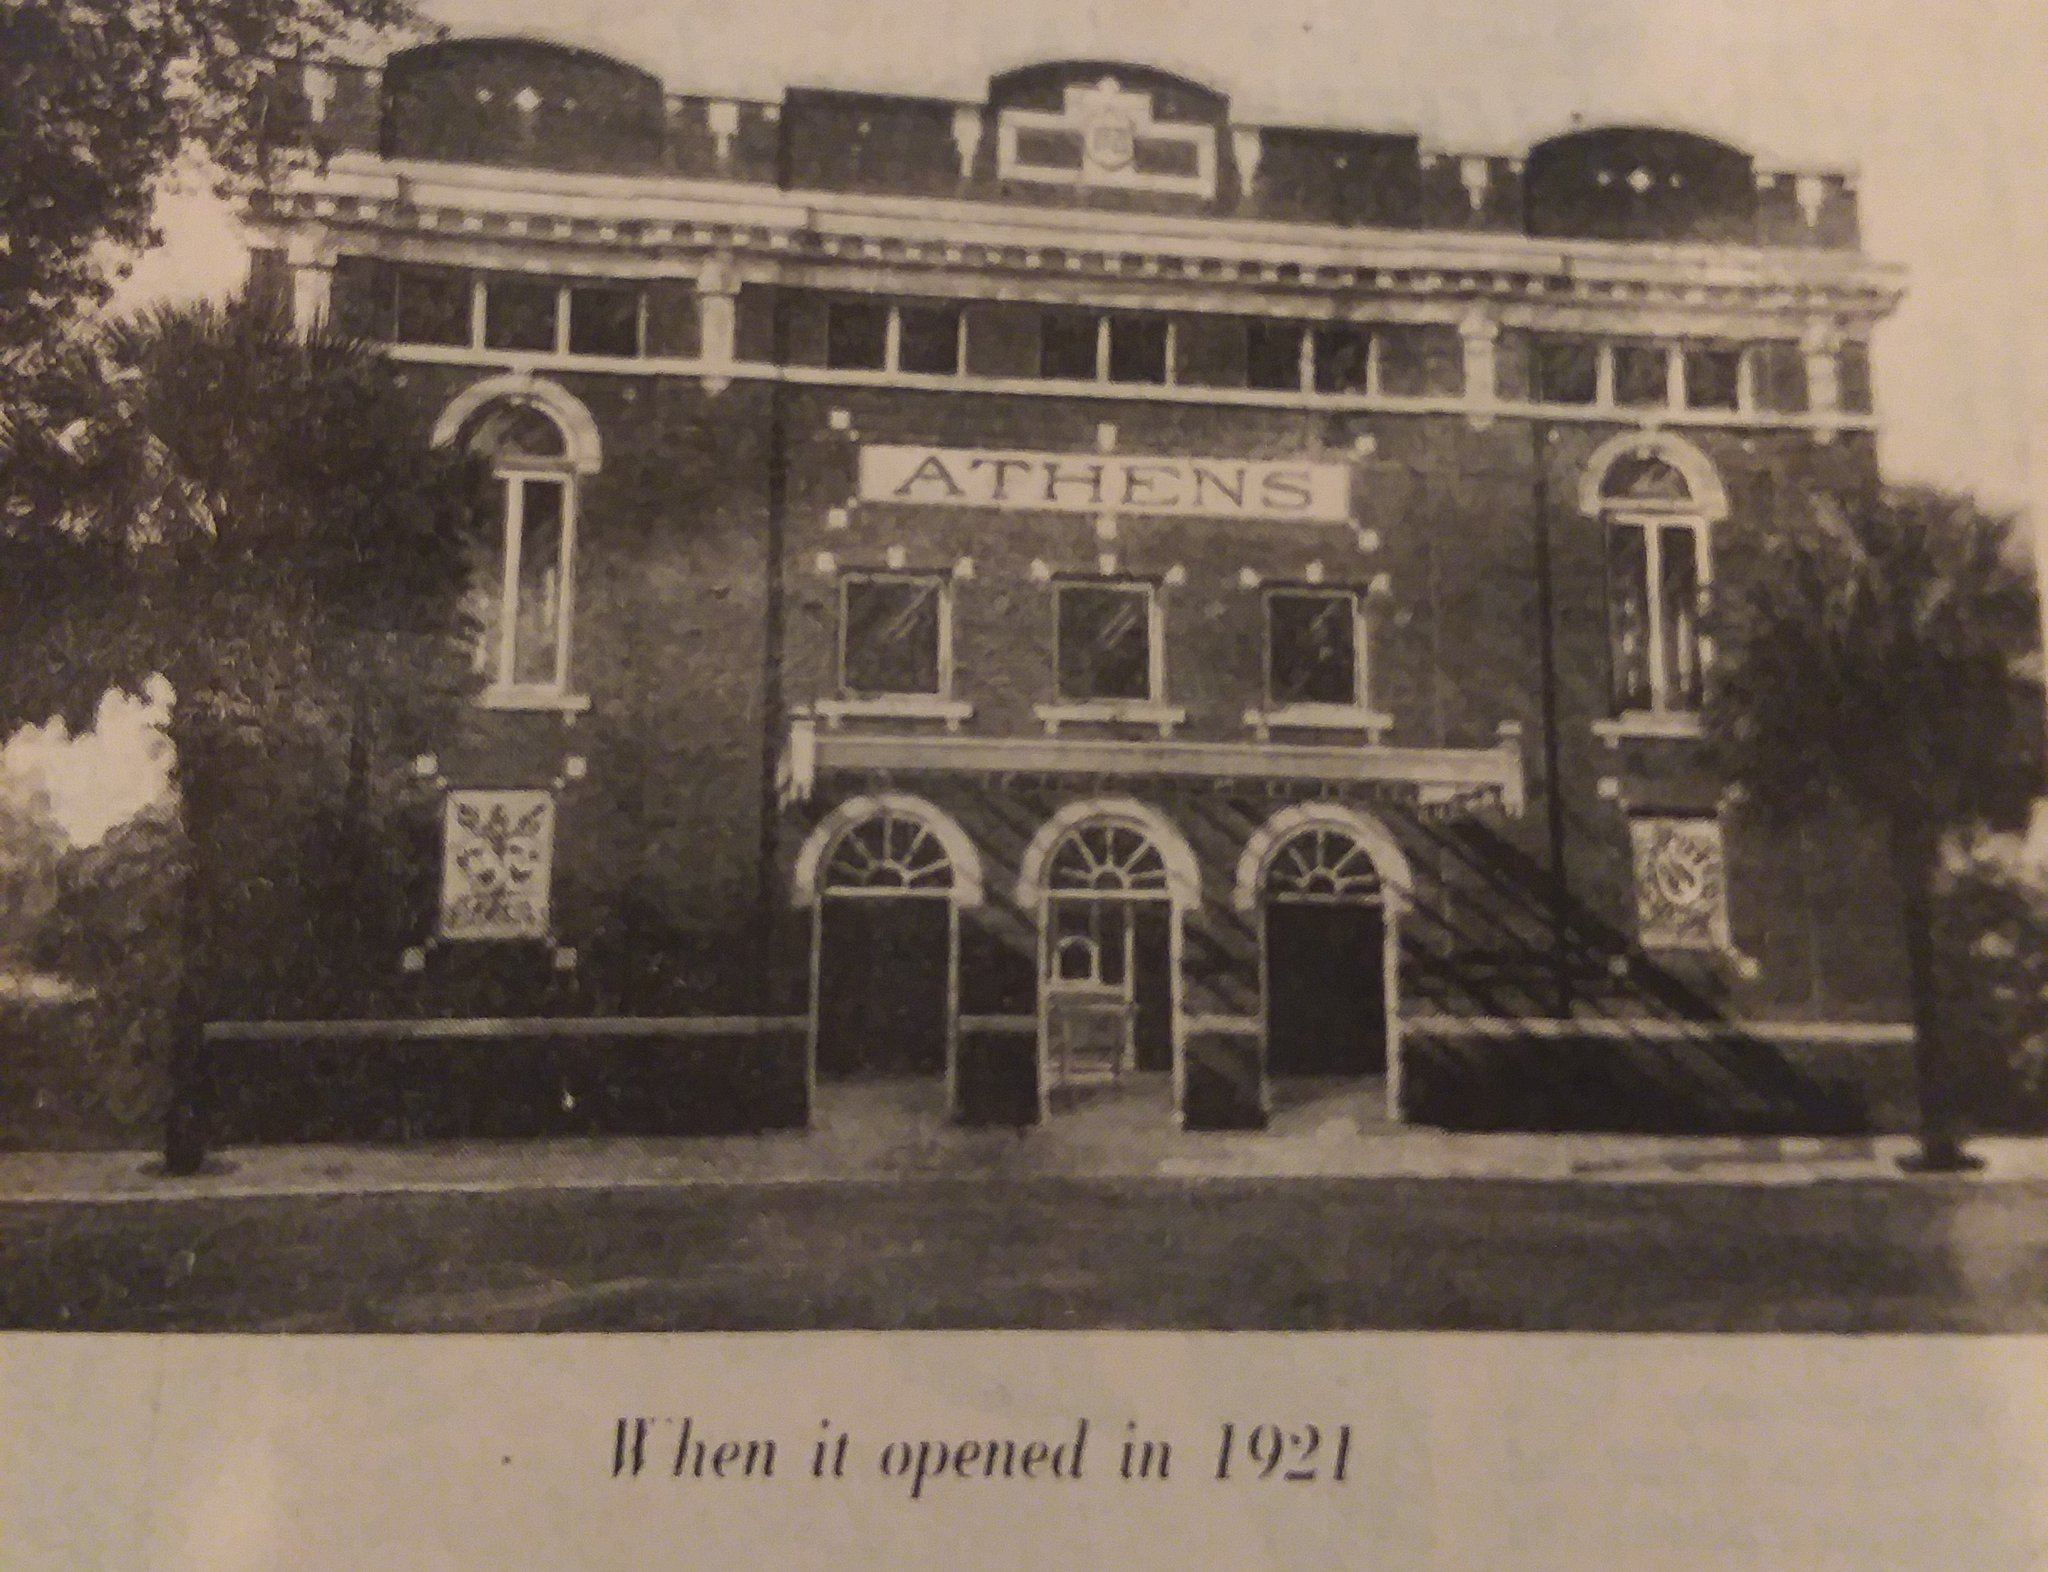 Athens Theatre in 1921 (source: West Volusia Historical Society)